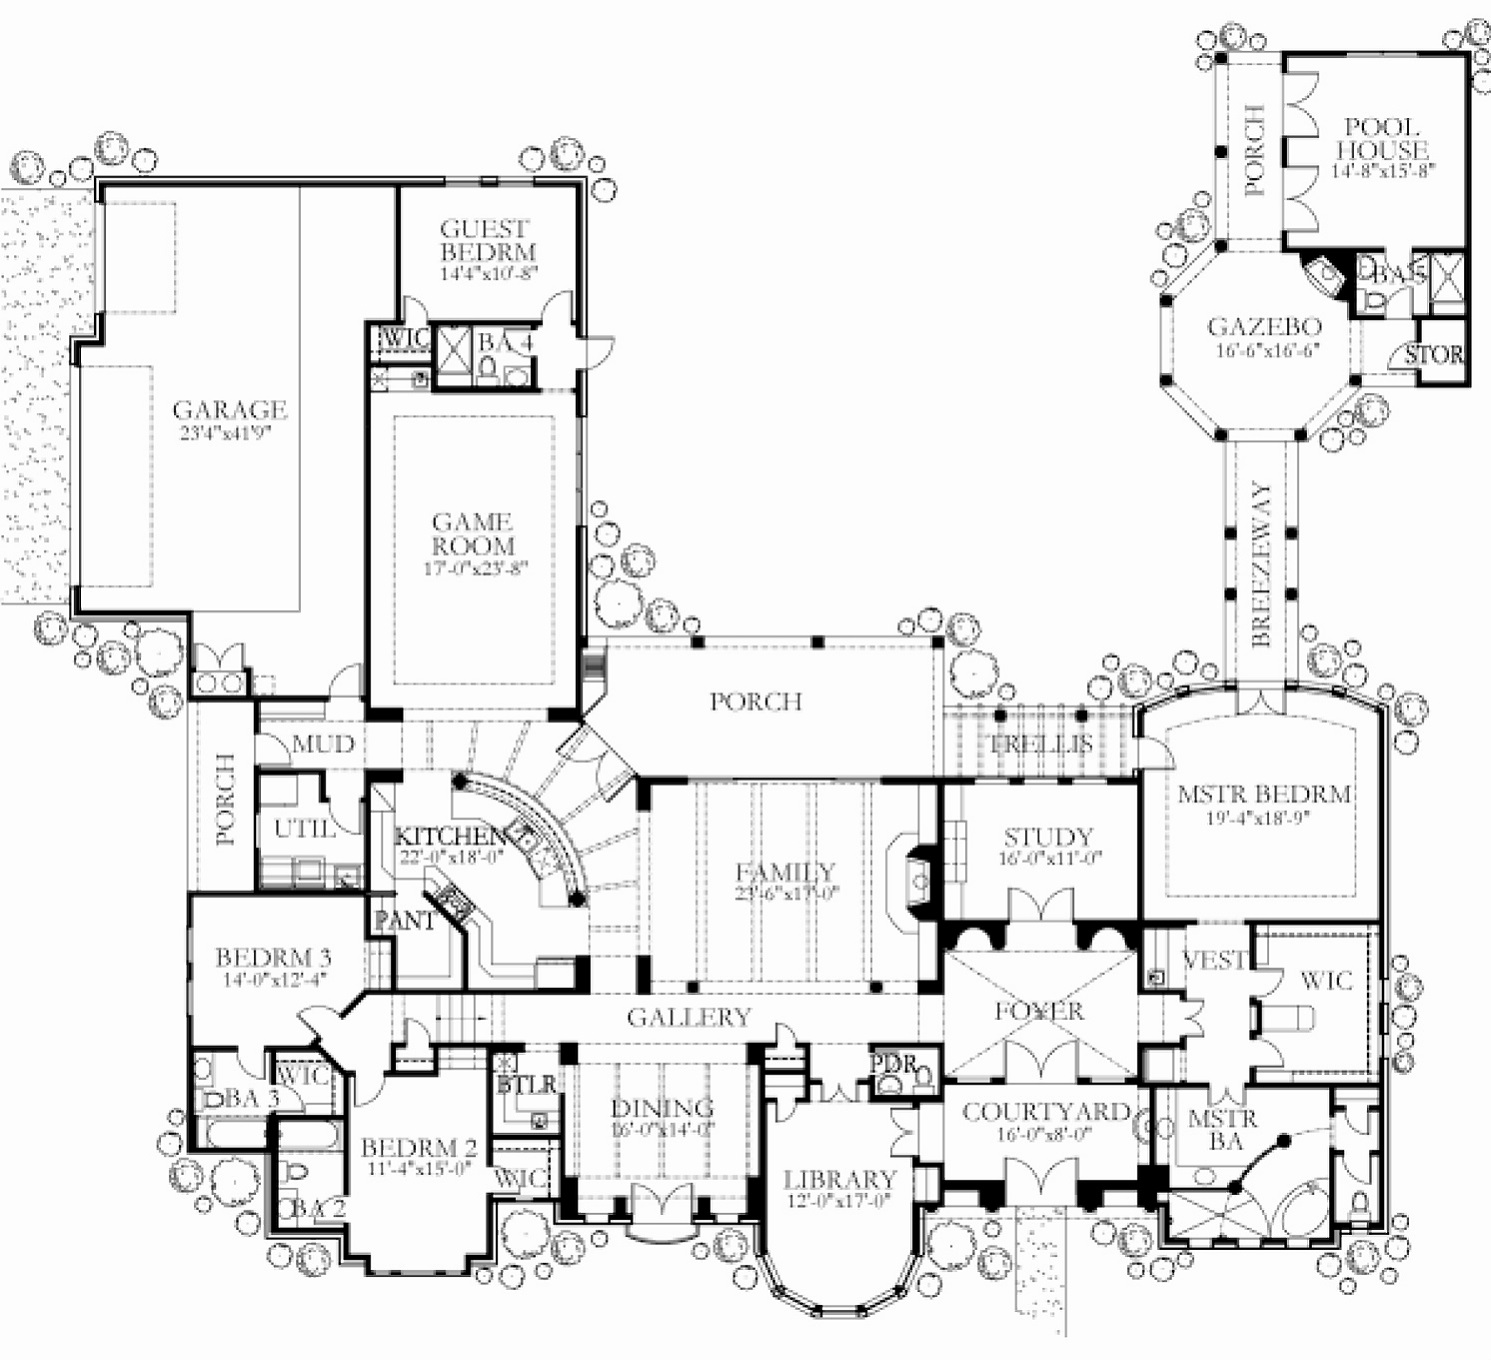 Floor plans glazier homes for 4500 sq ft house plans